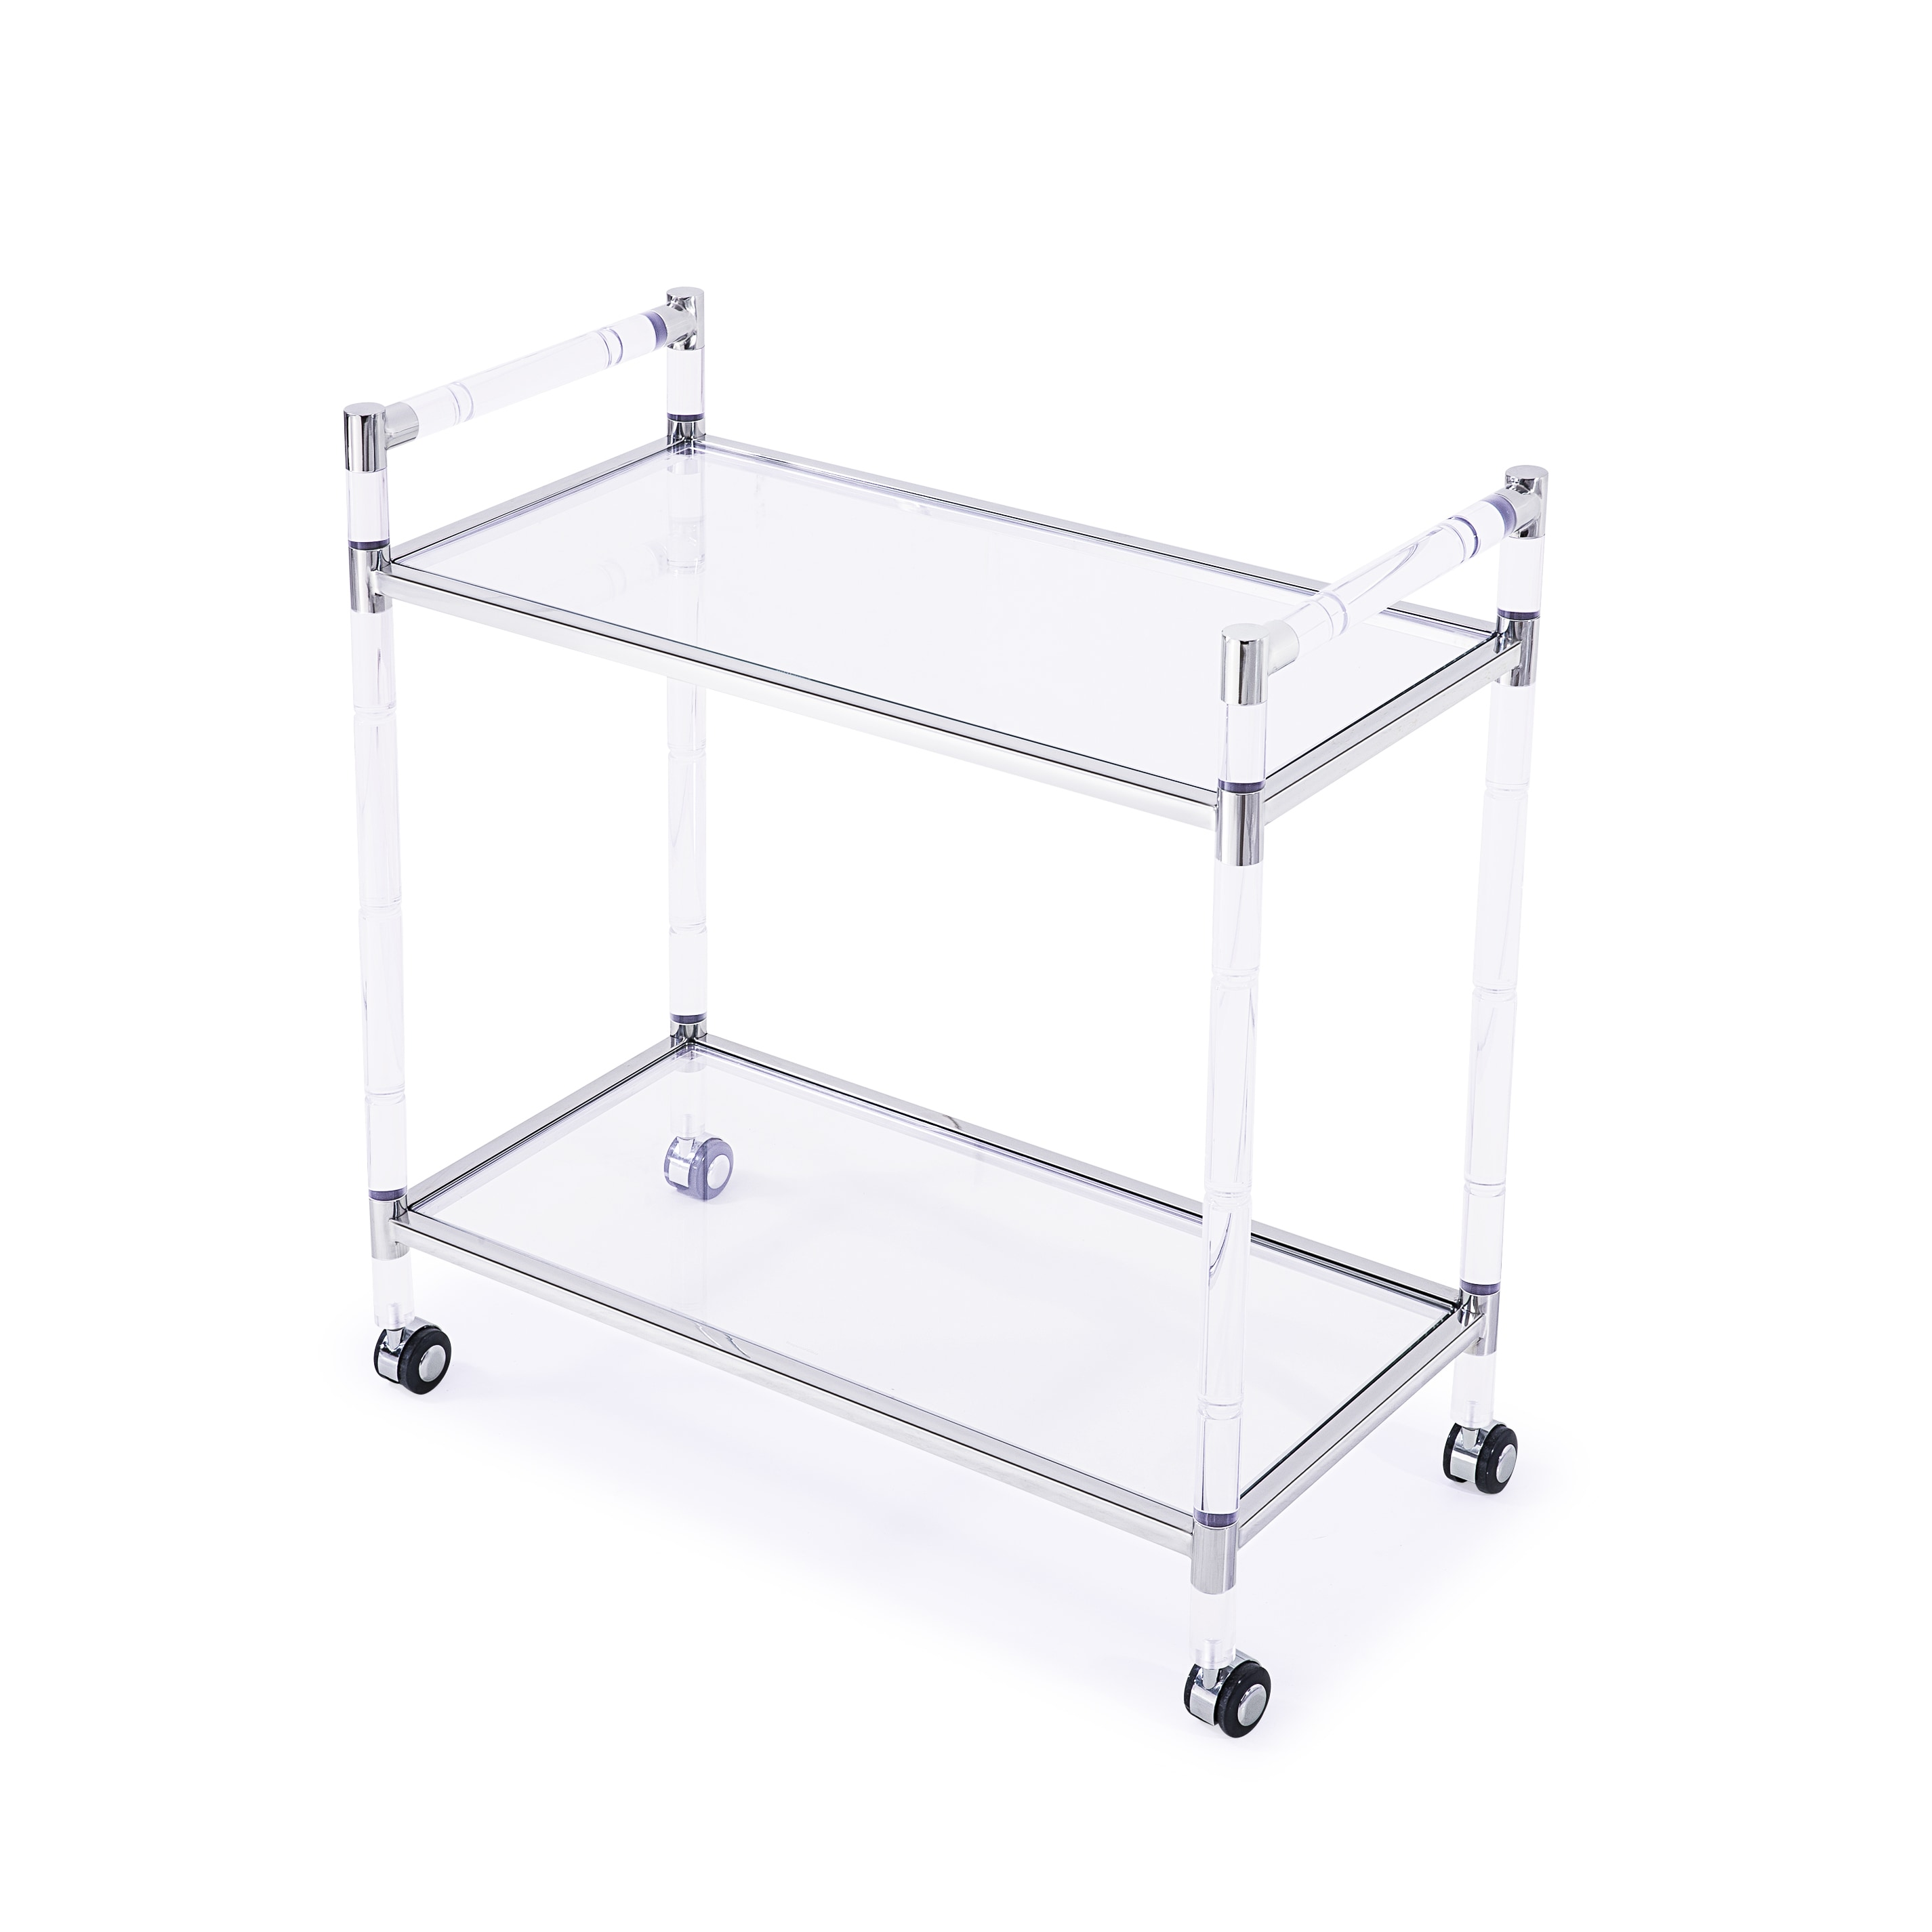 bariatric jr atlas ais products side trolley folded healthcare shower rail tr